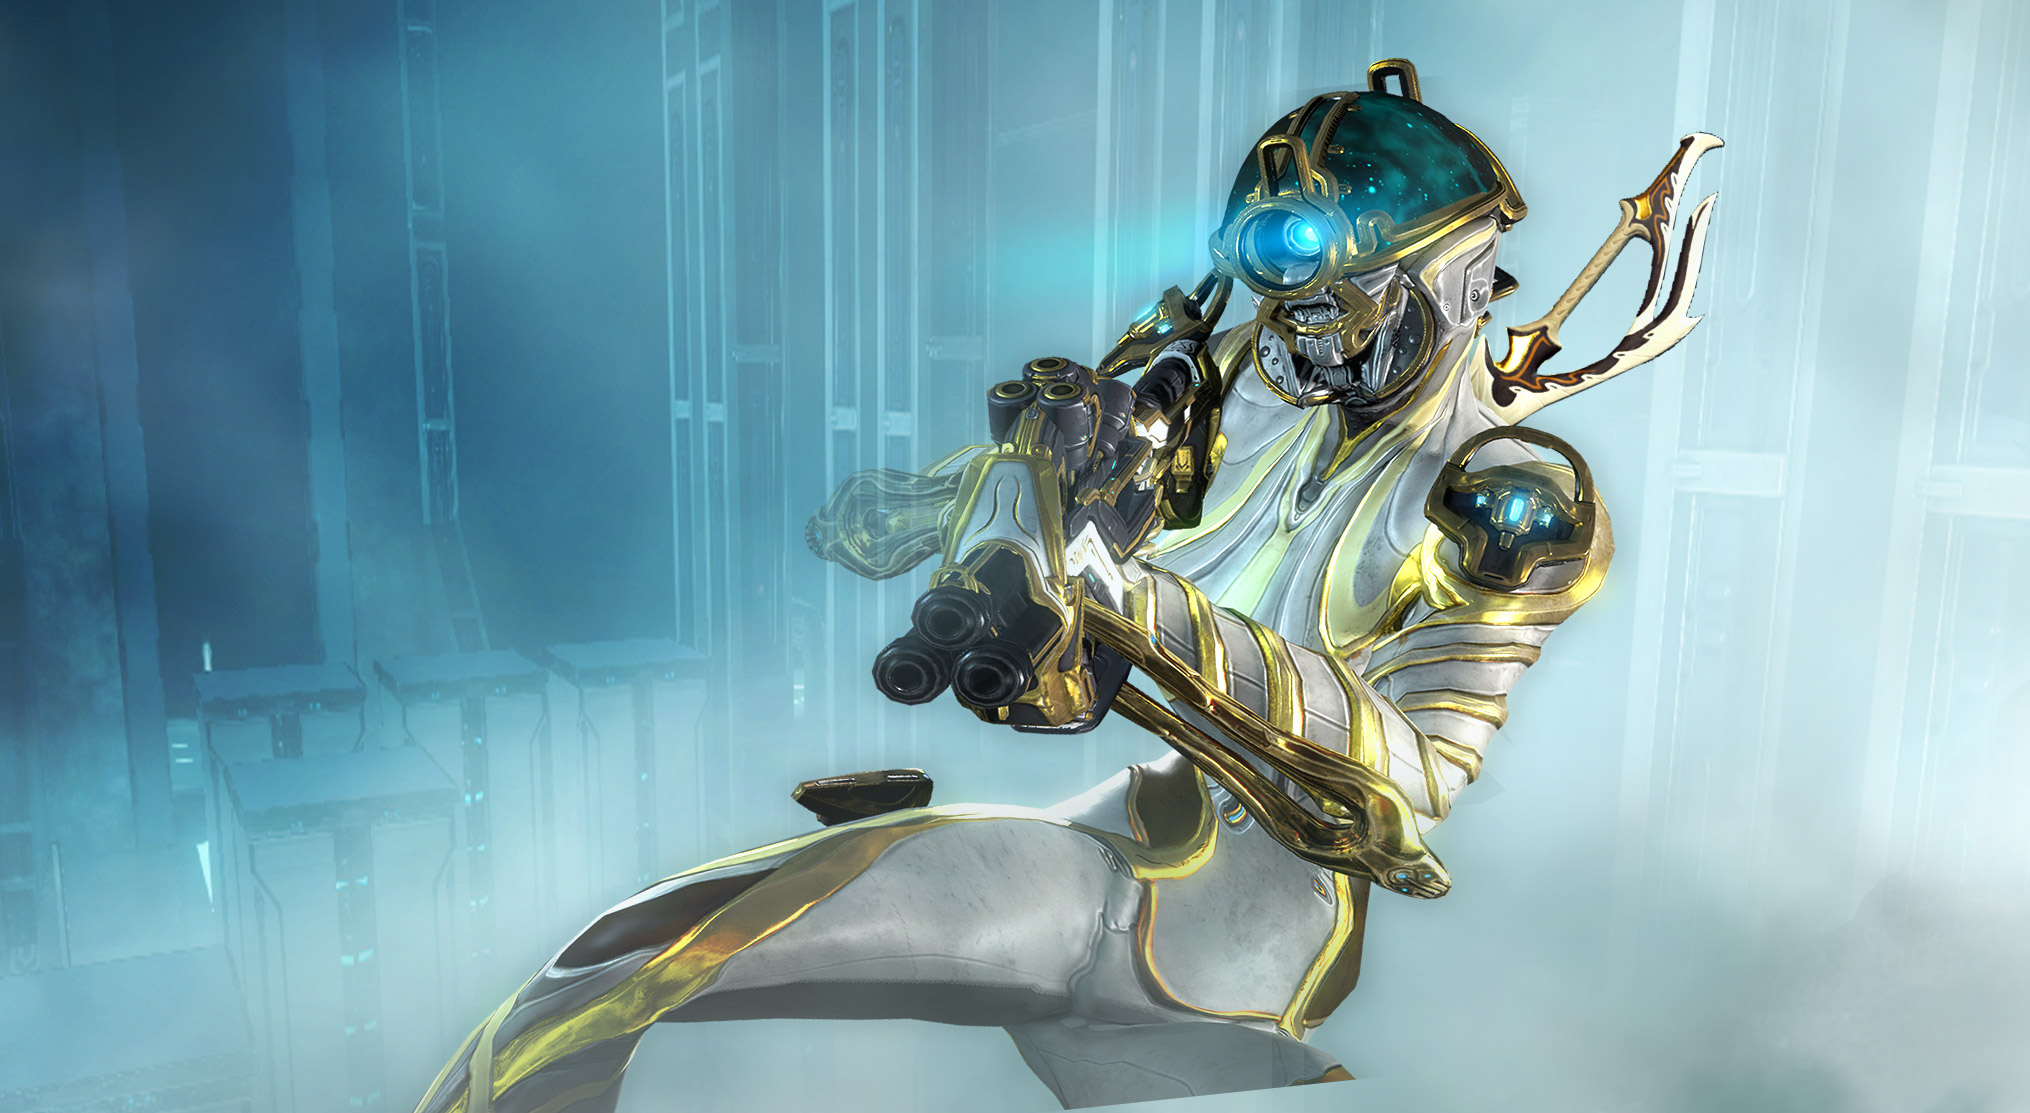 Steam Community :: Guide :: Primes and Prime Weapons